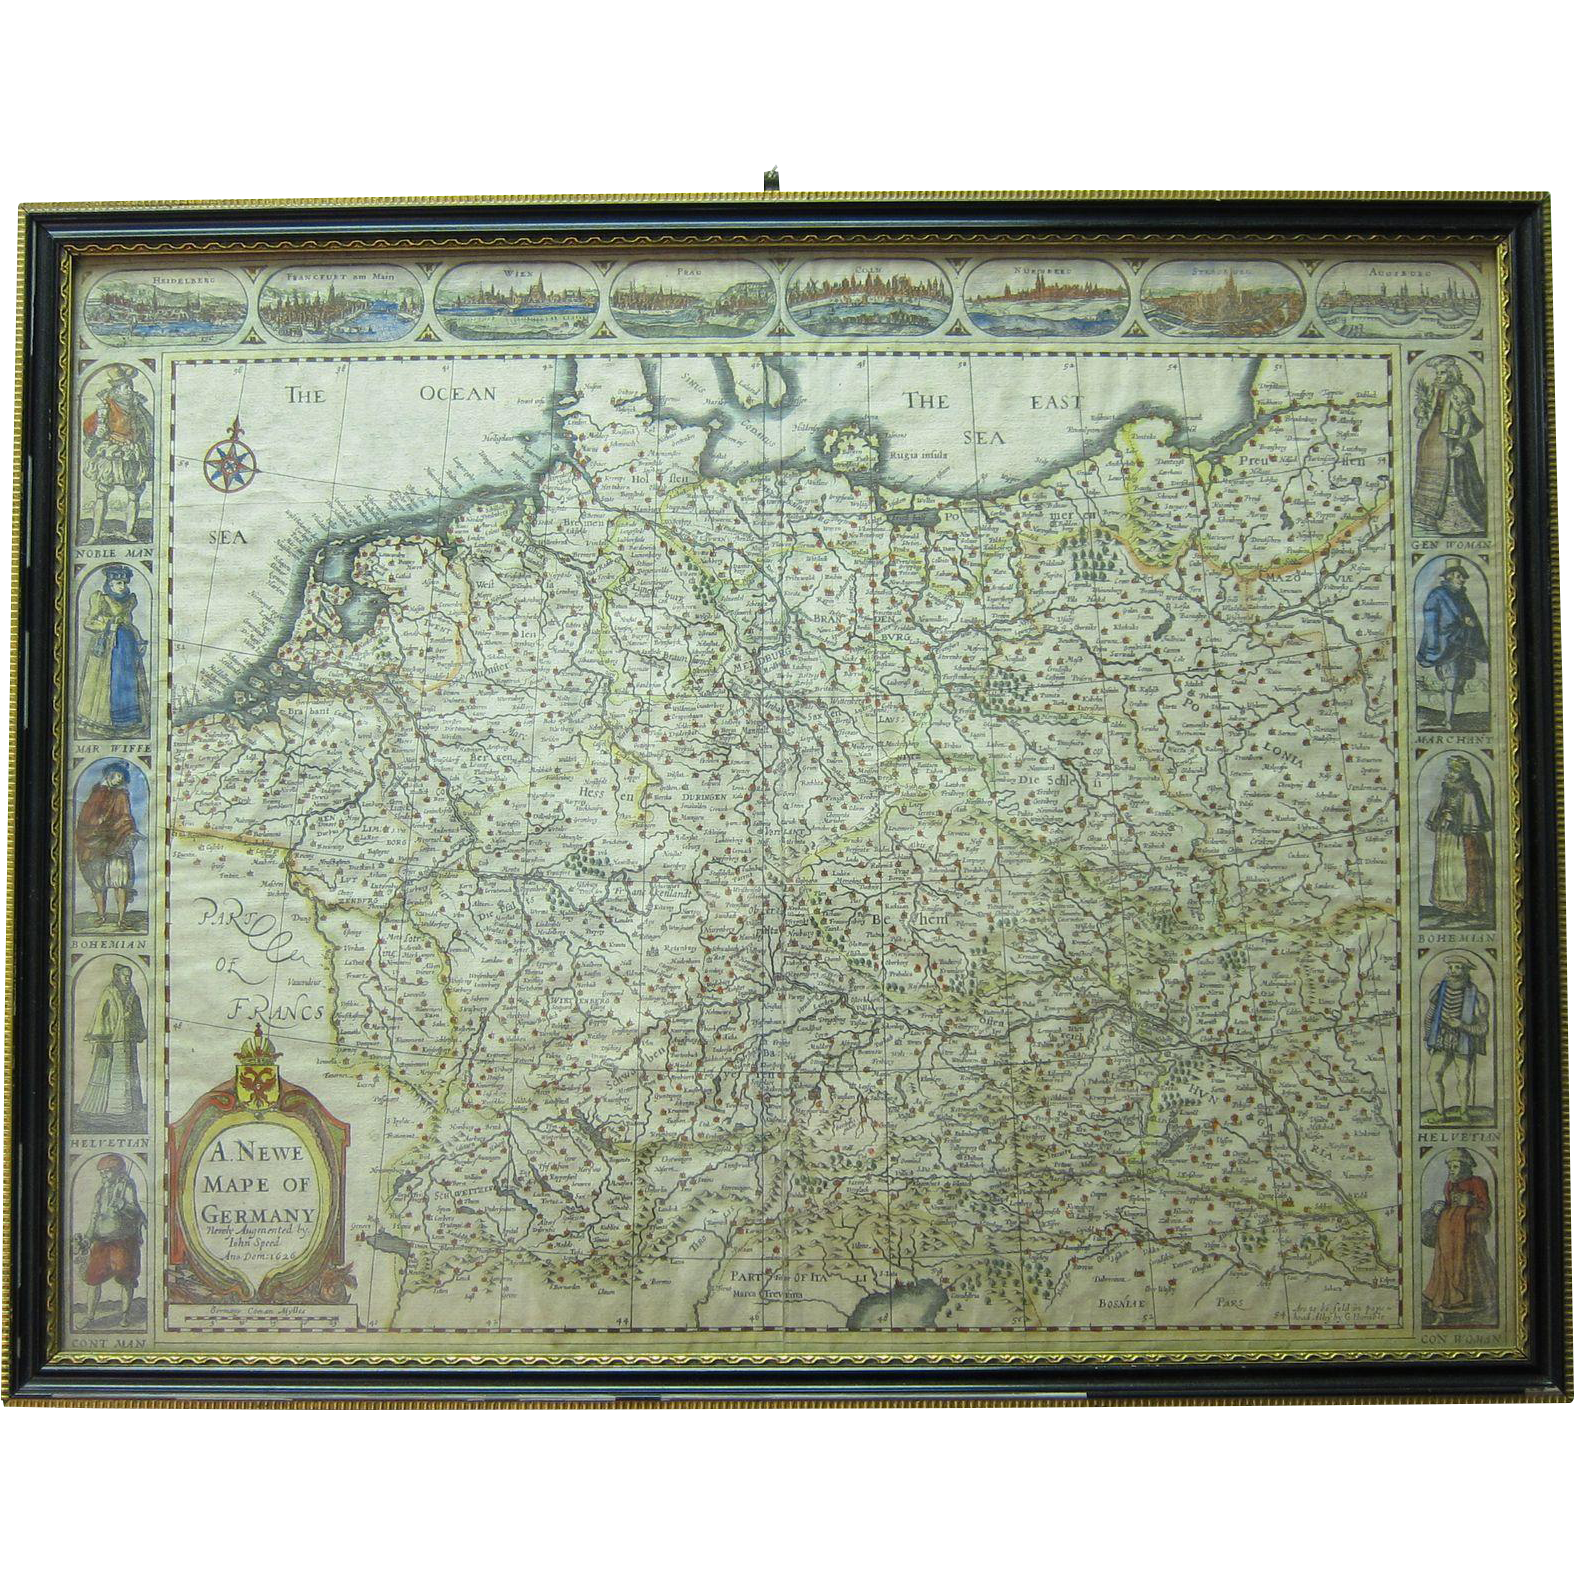 Antique Copperplate Engraving Map of Germany by John Speed Circa 1627-1676